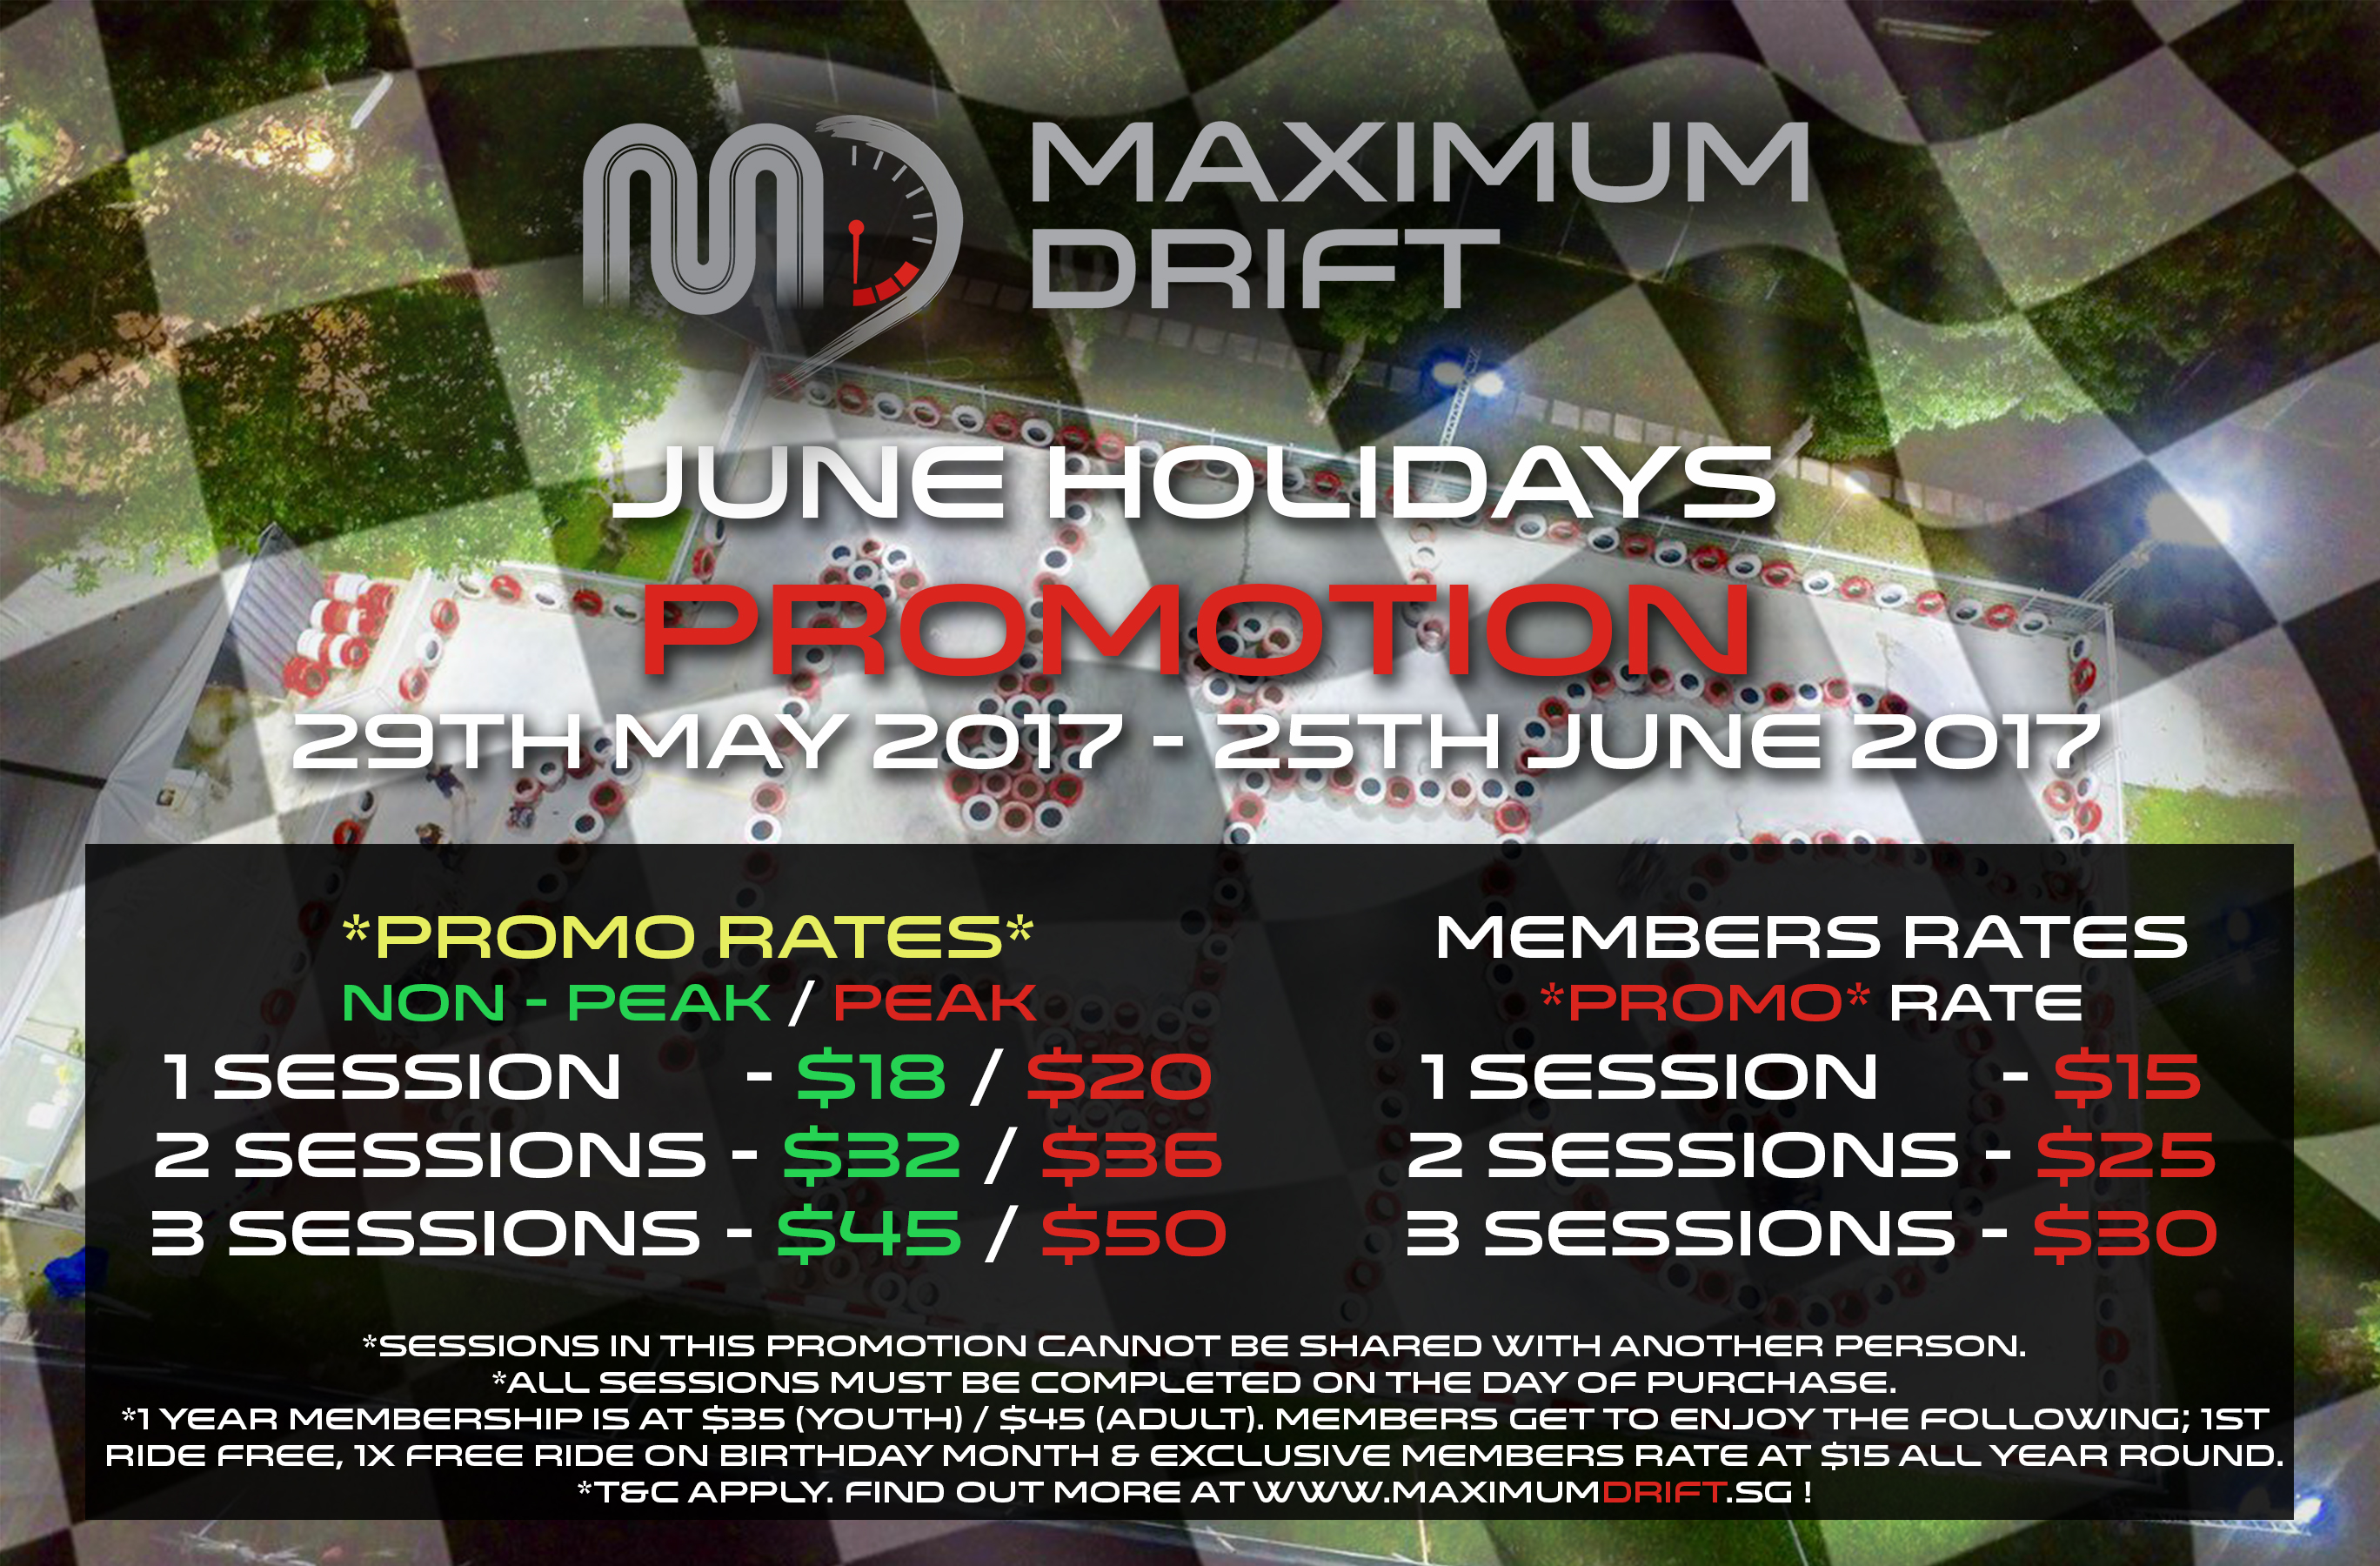 June Holiday Promotion